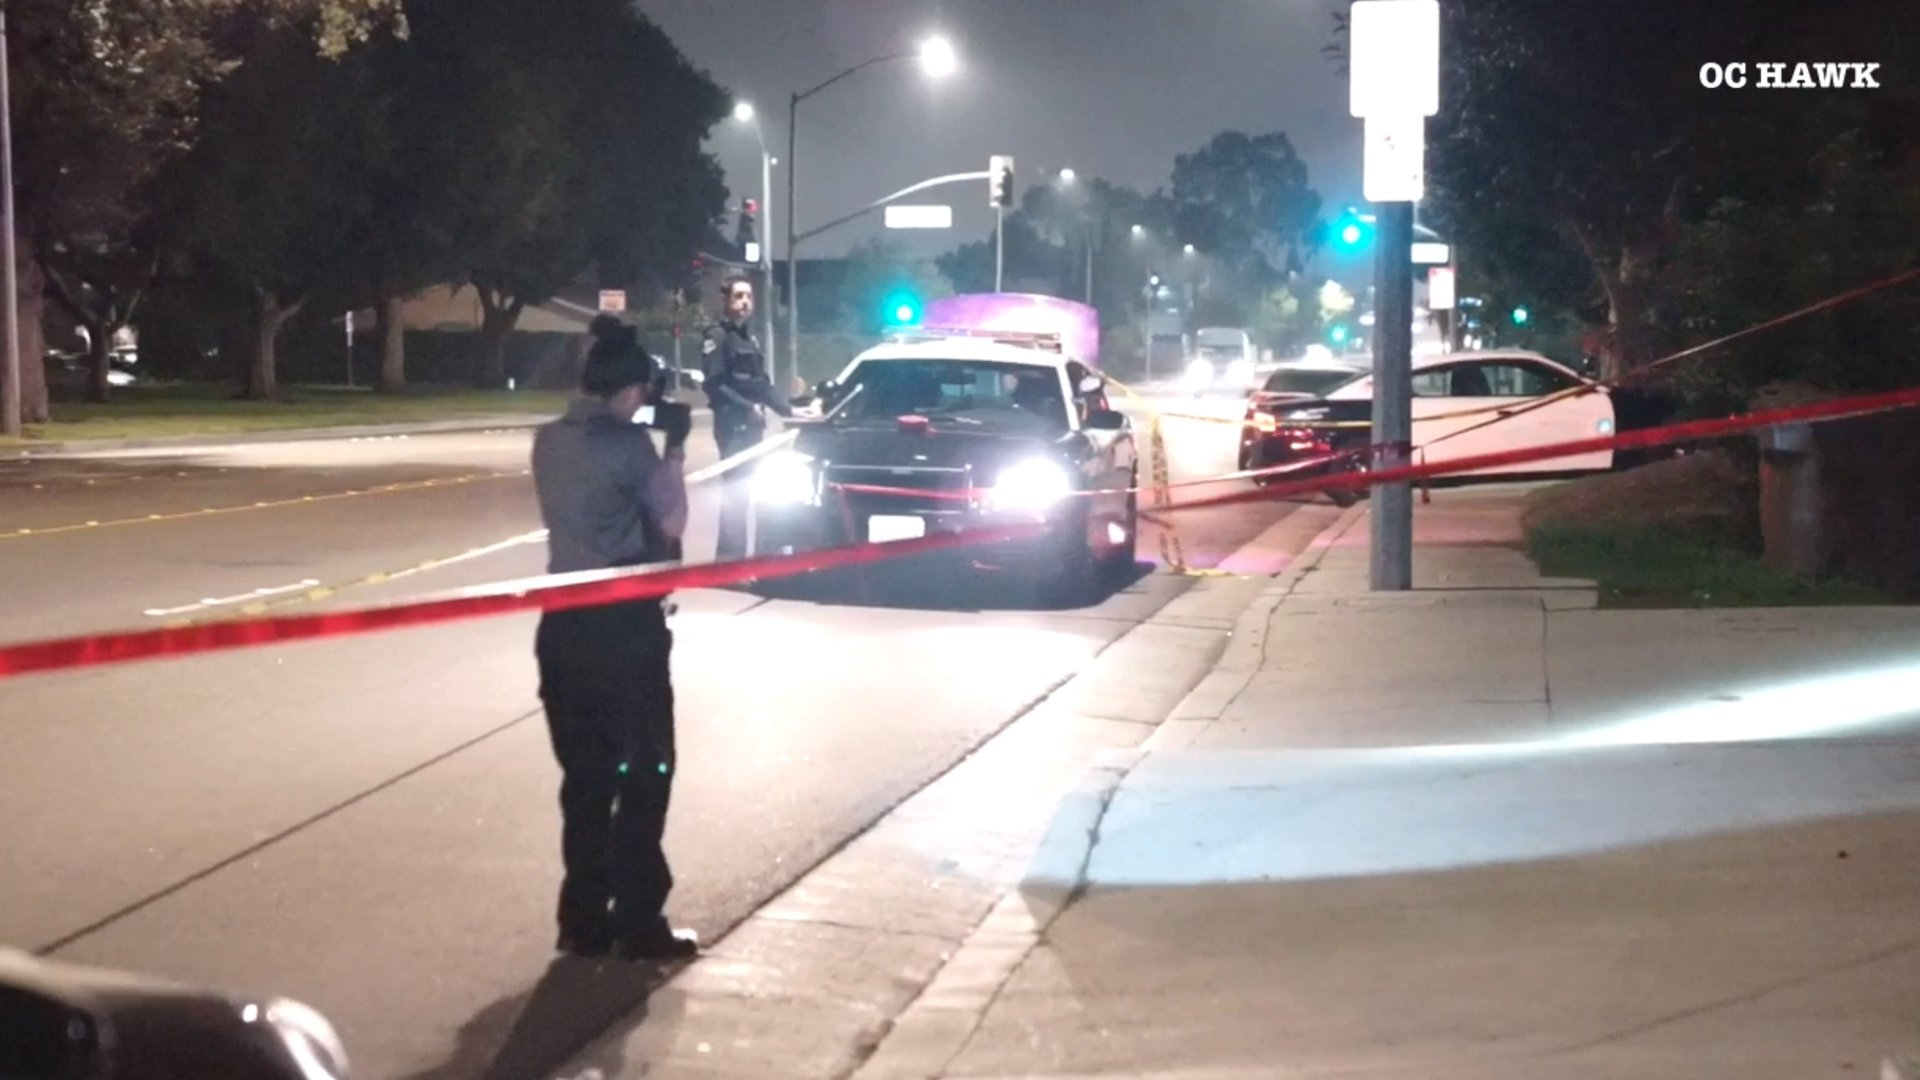 Police investigate a shooting that left a 14-year-old boy wounded in Anaheim on Jan. 25, 2020. (Credit: OC HAWK)